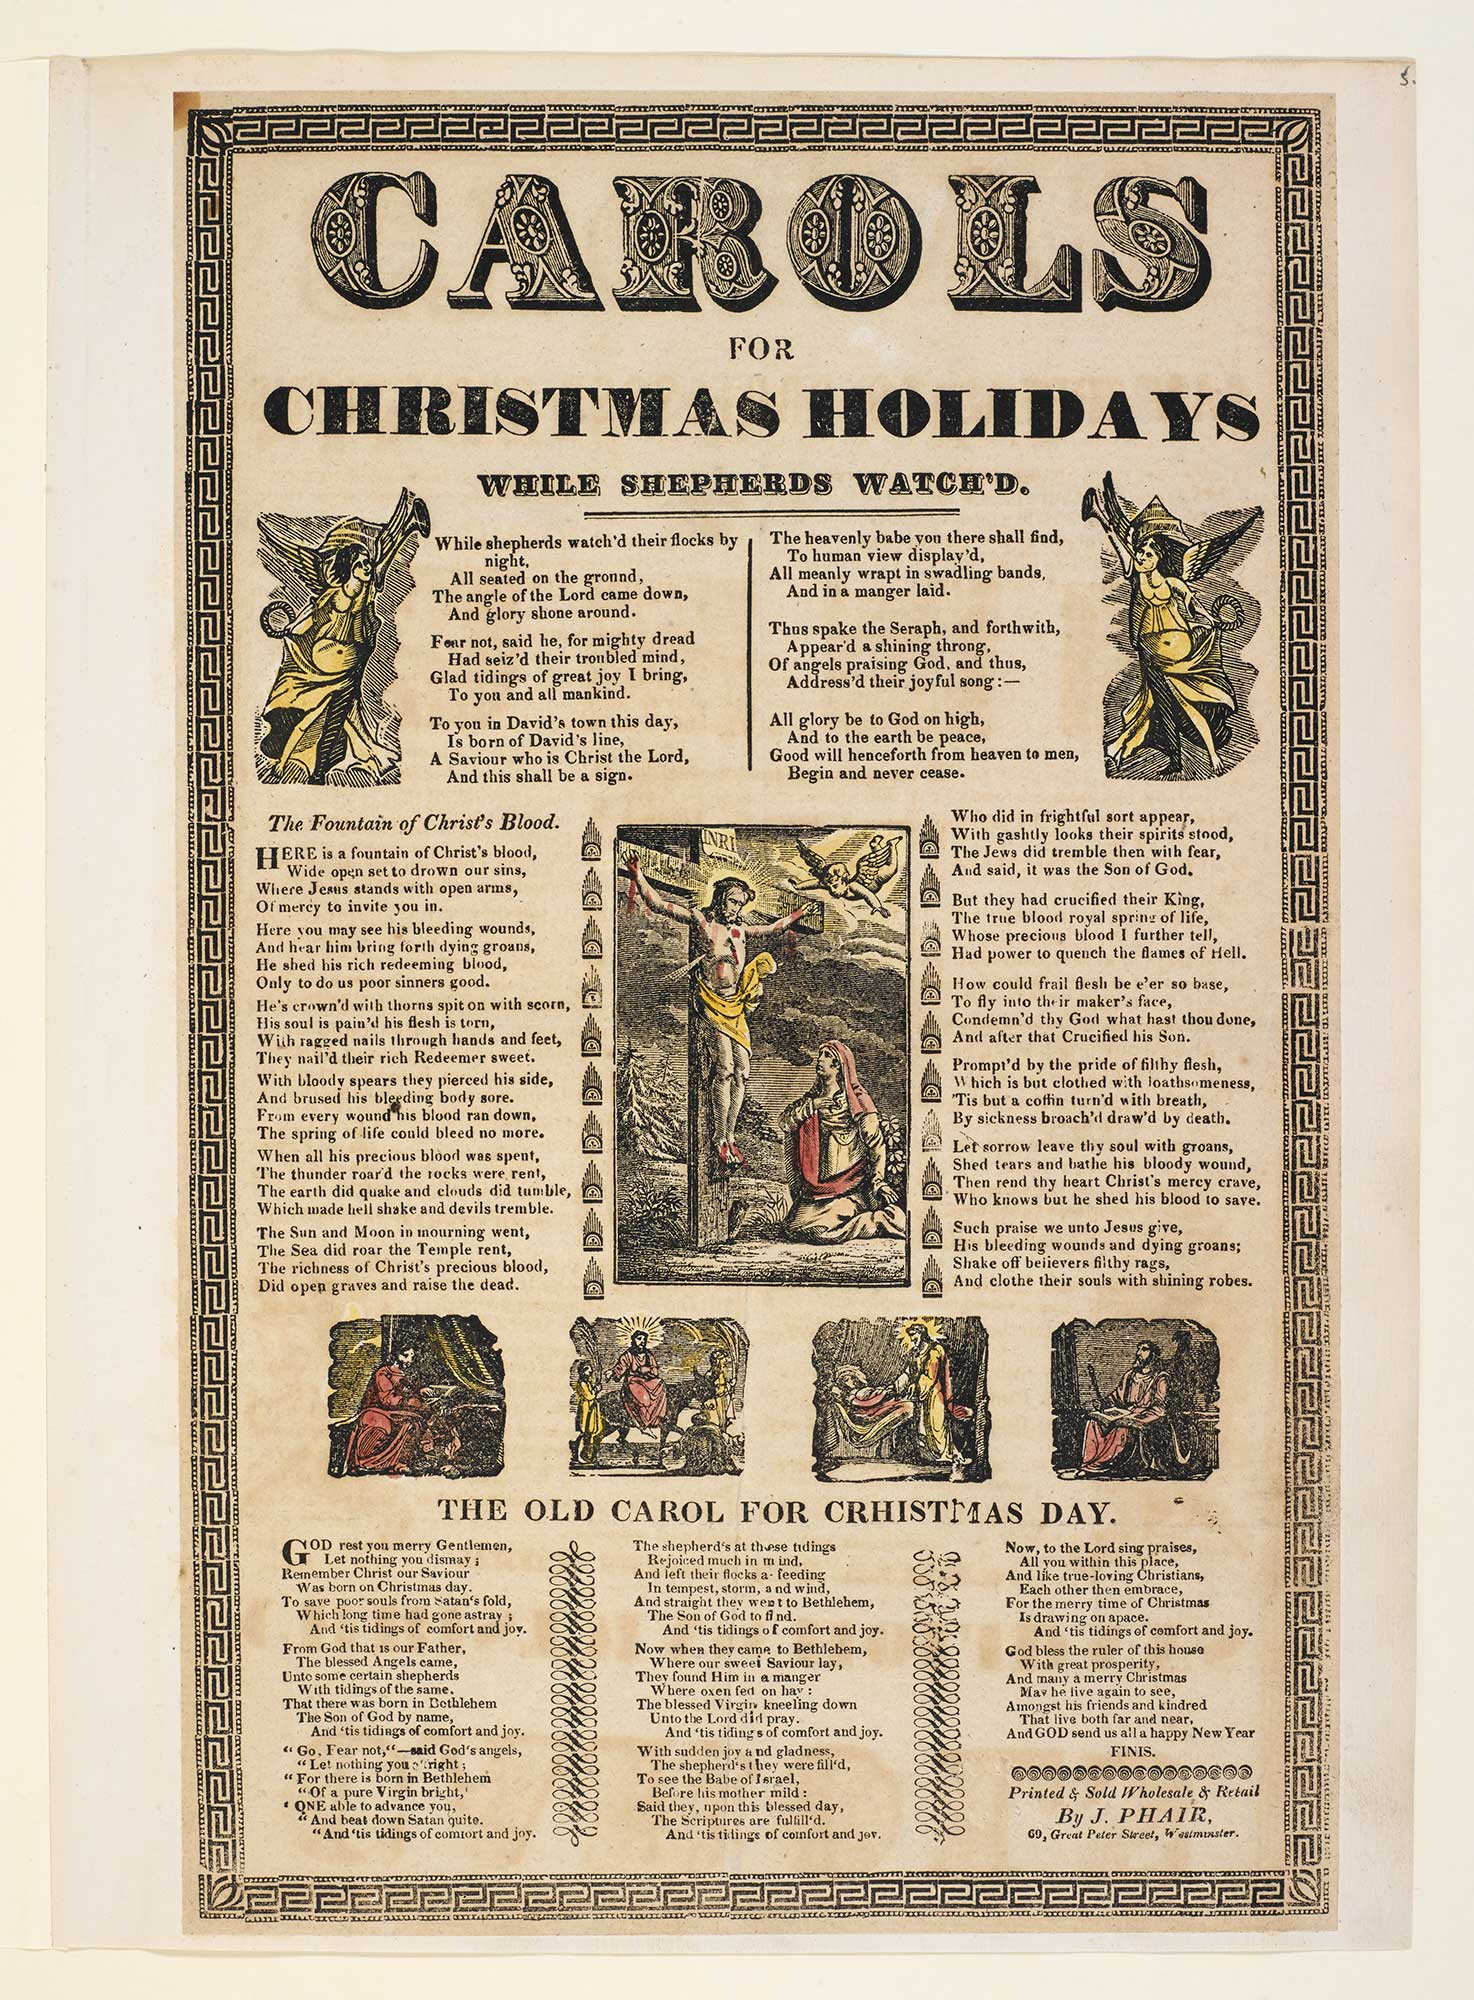 Broadside: Carols for Christmas Holidays